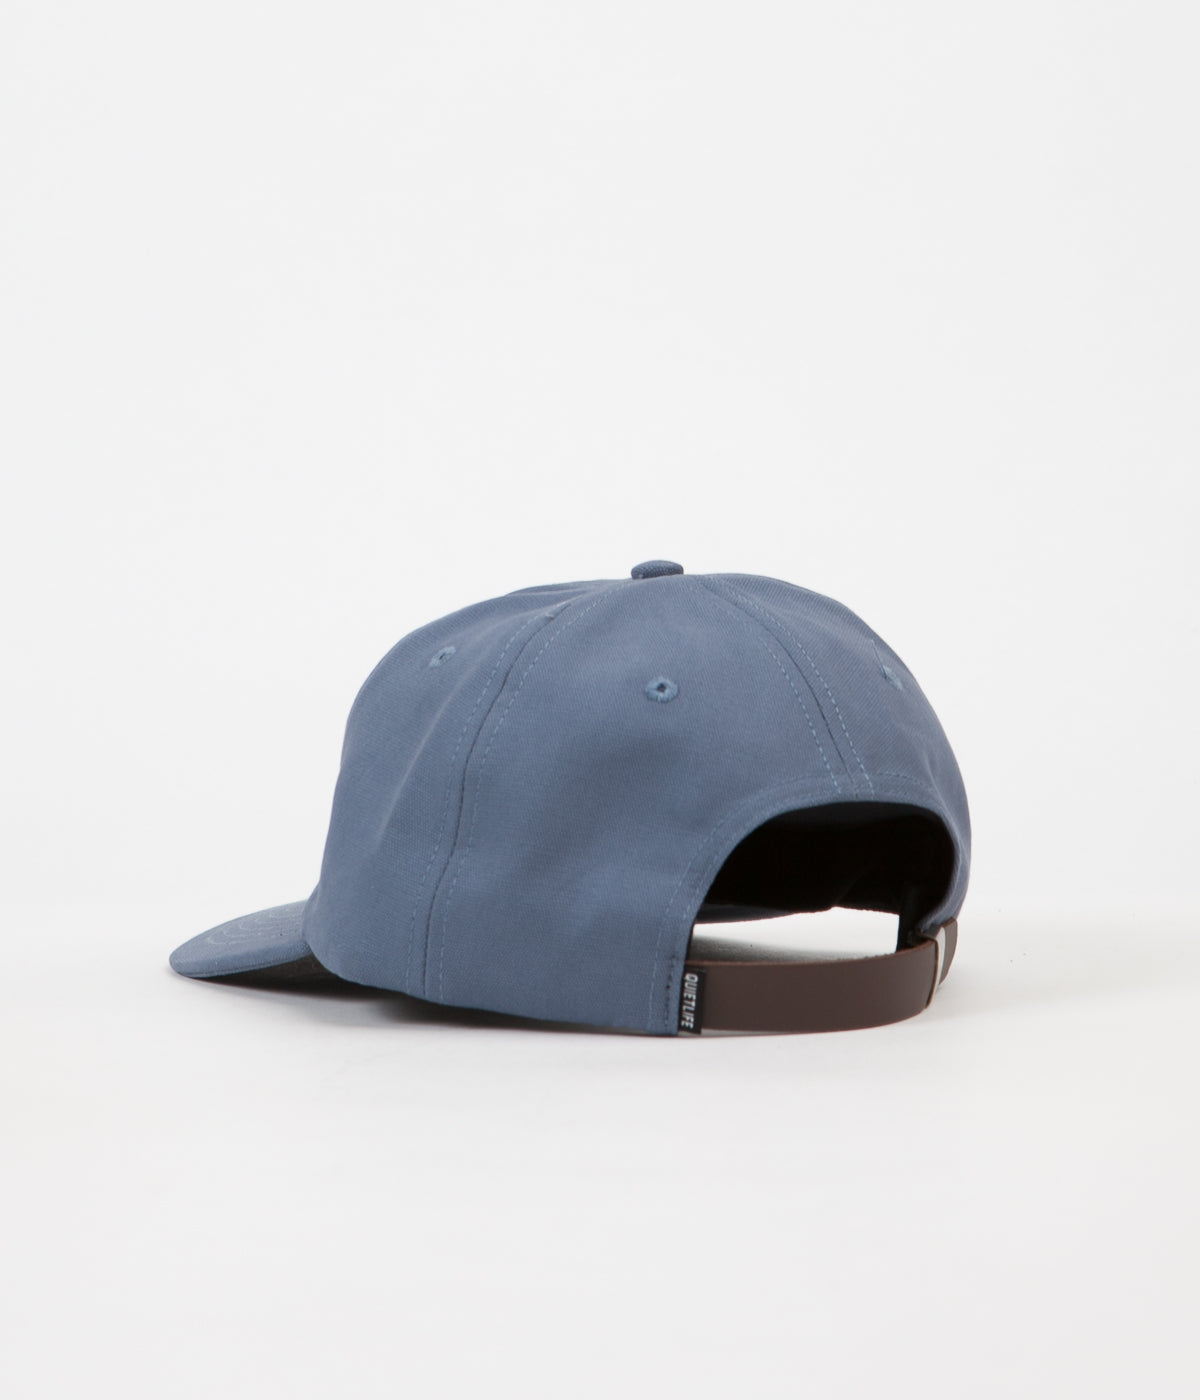 The Quiet Life Pen And Ink Polo Cap - Cool River Blue